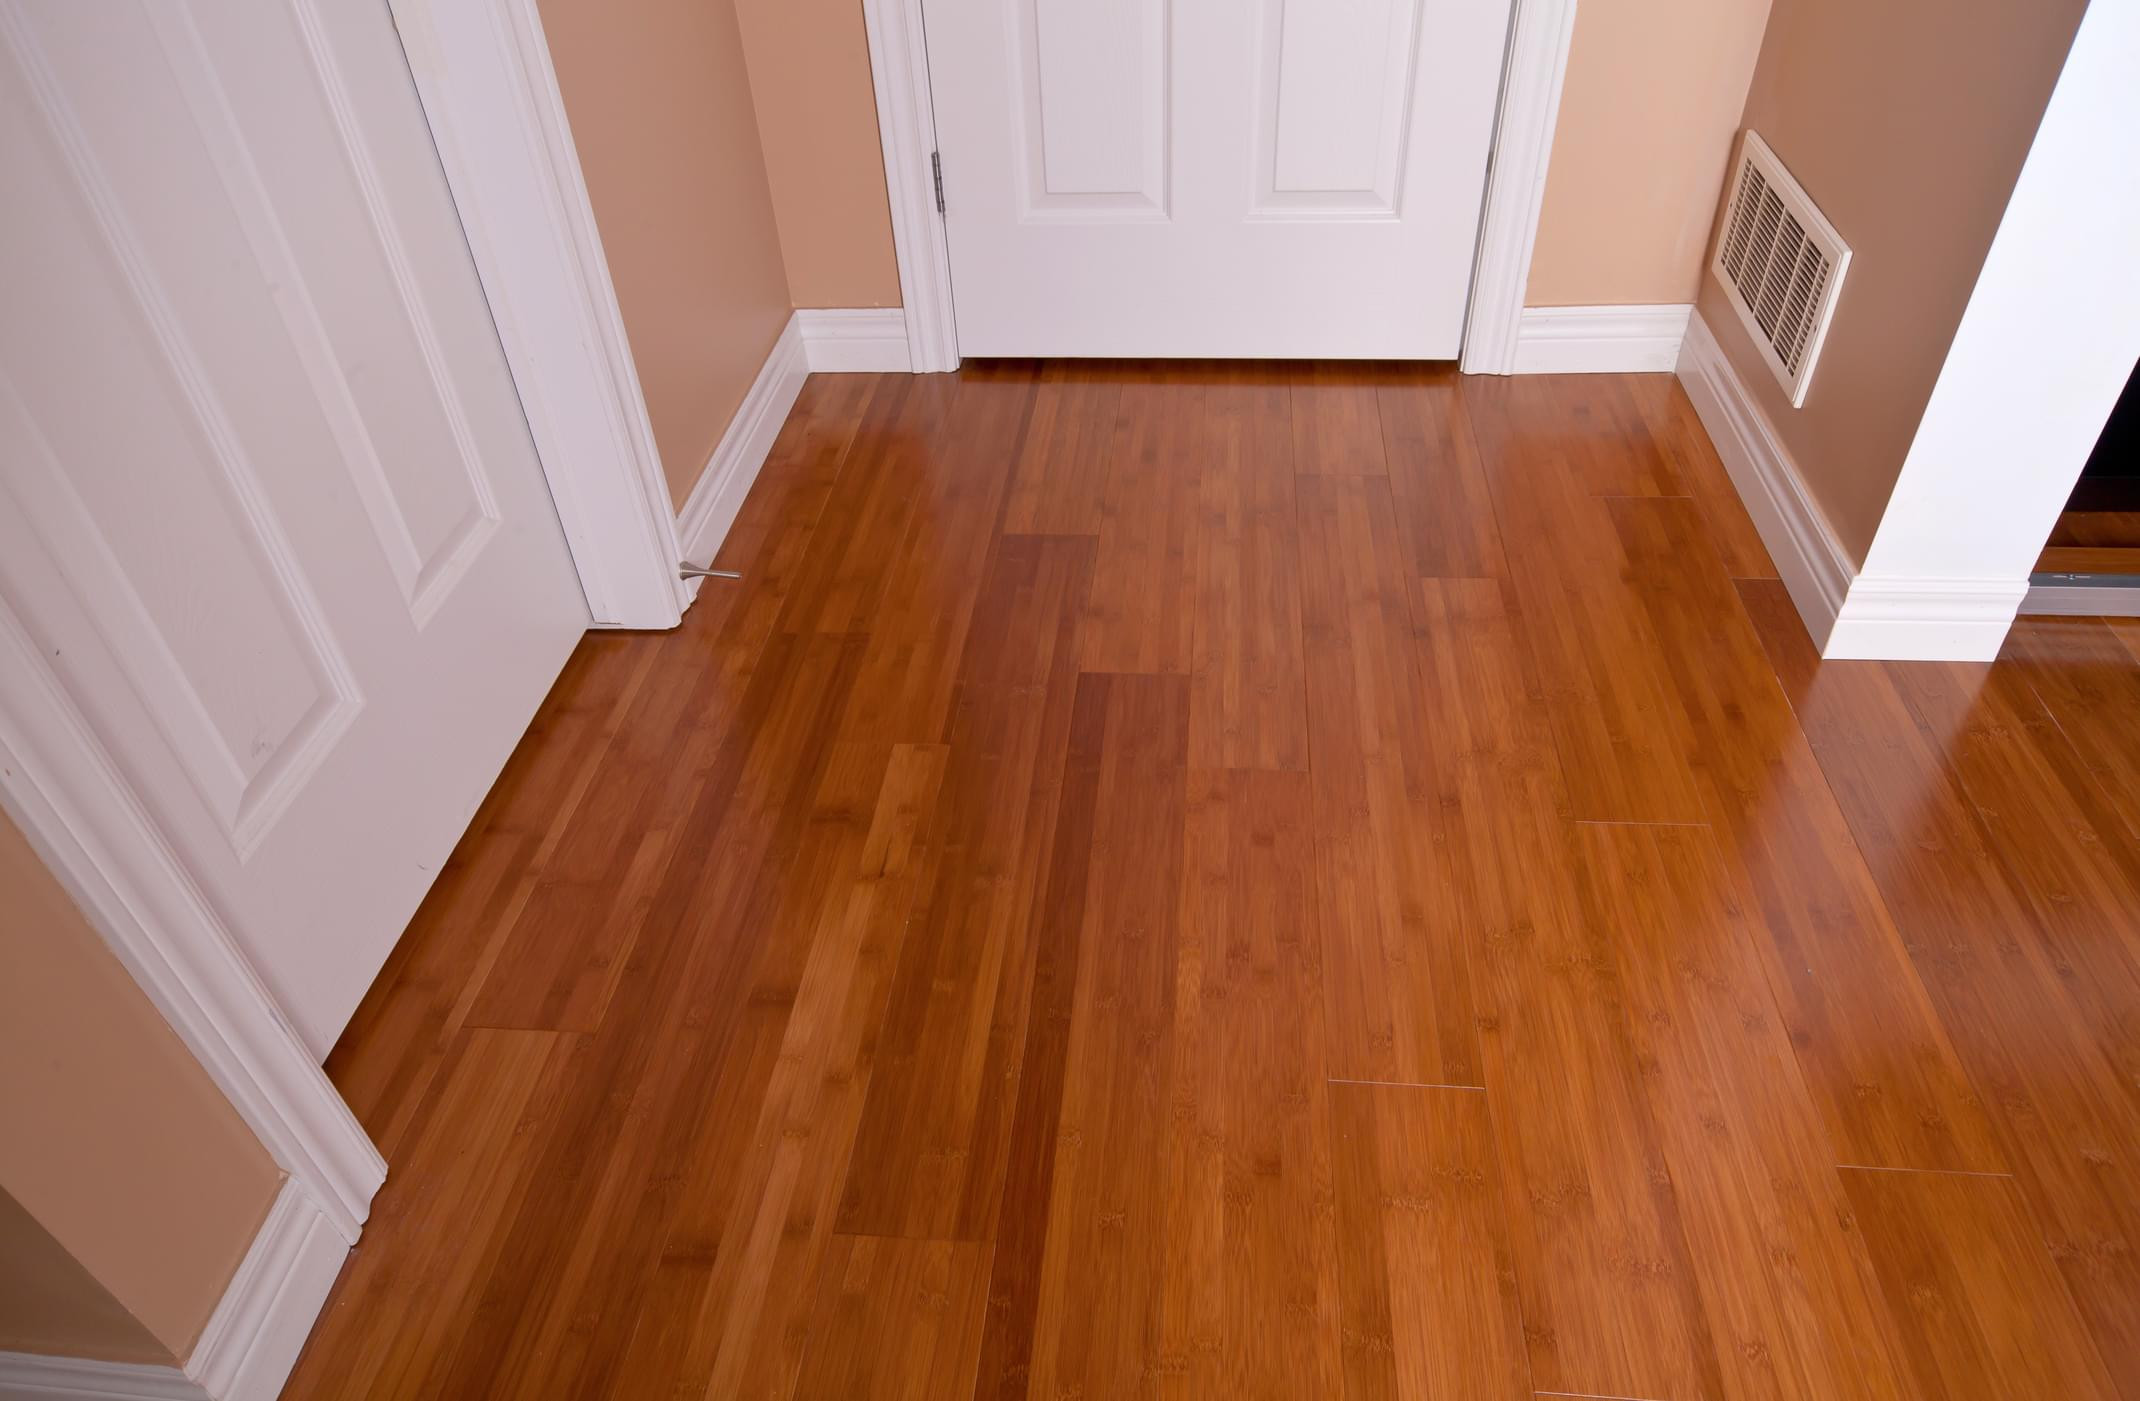 hardwood floor price estimator of downriver carpet flooring in hardwood request your free in home estimate no high pressure sales no strings attached